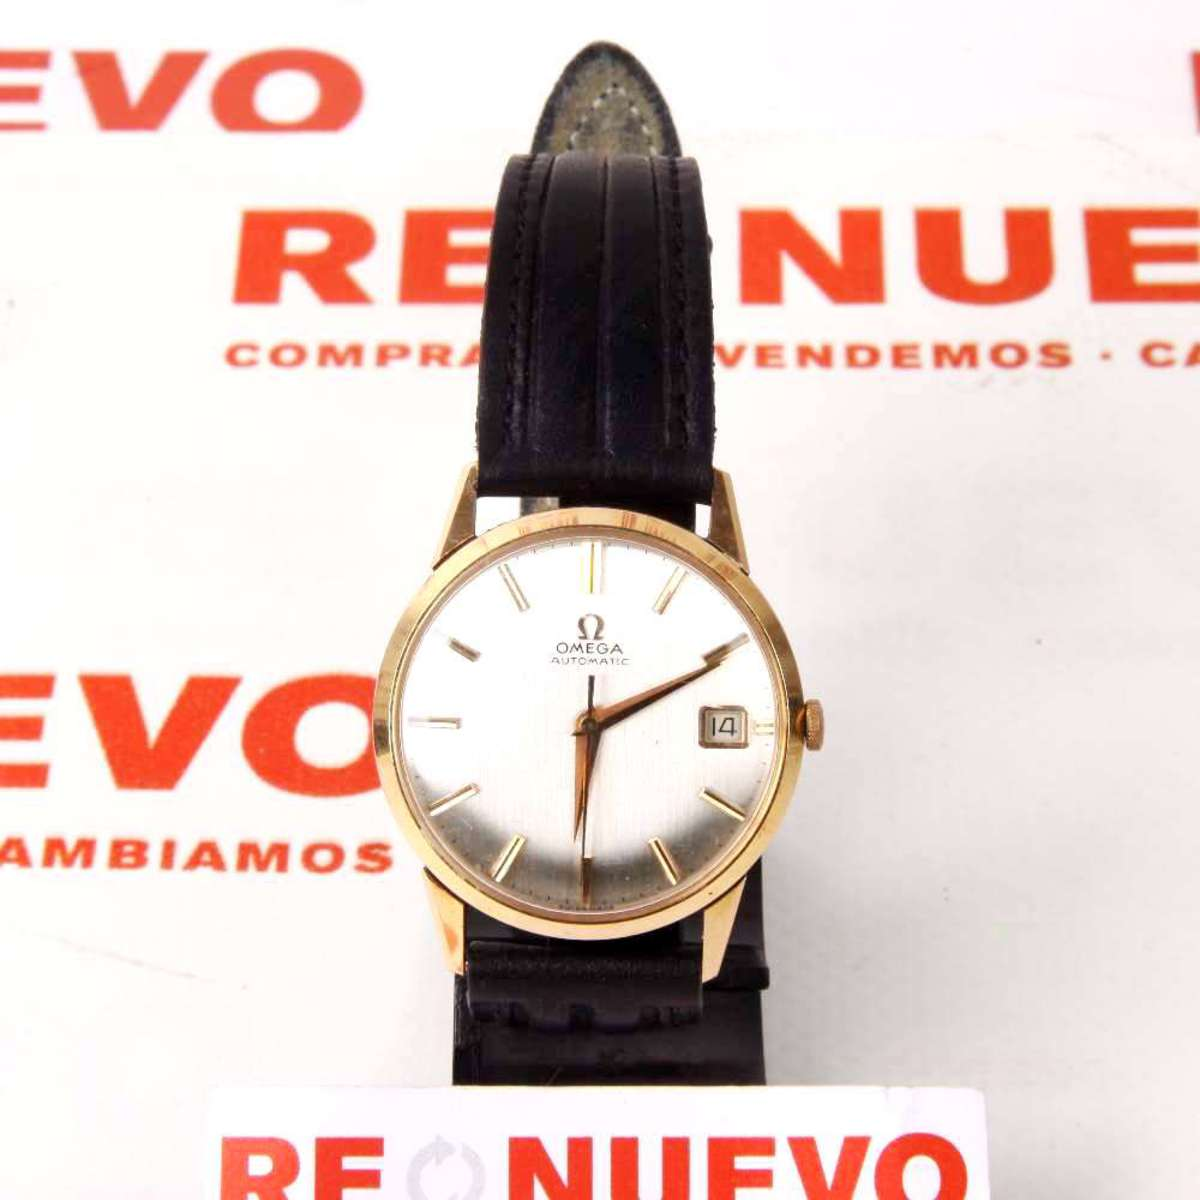 Reloj de segunda mano OMEGA de oro E264853 Tienda online de segunda